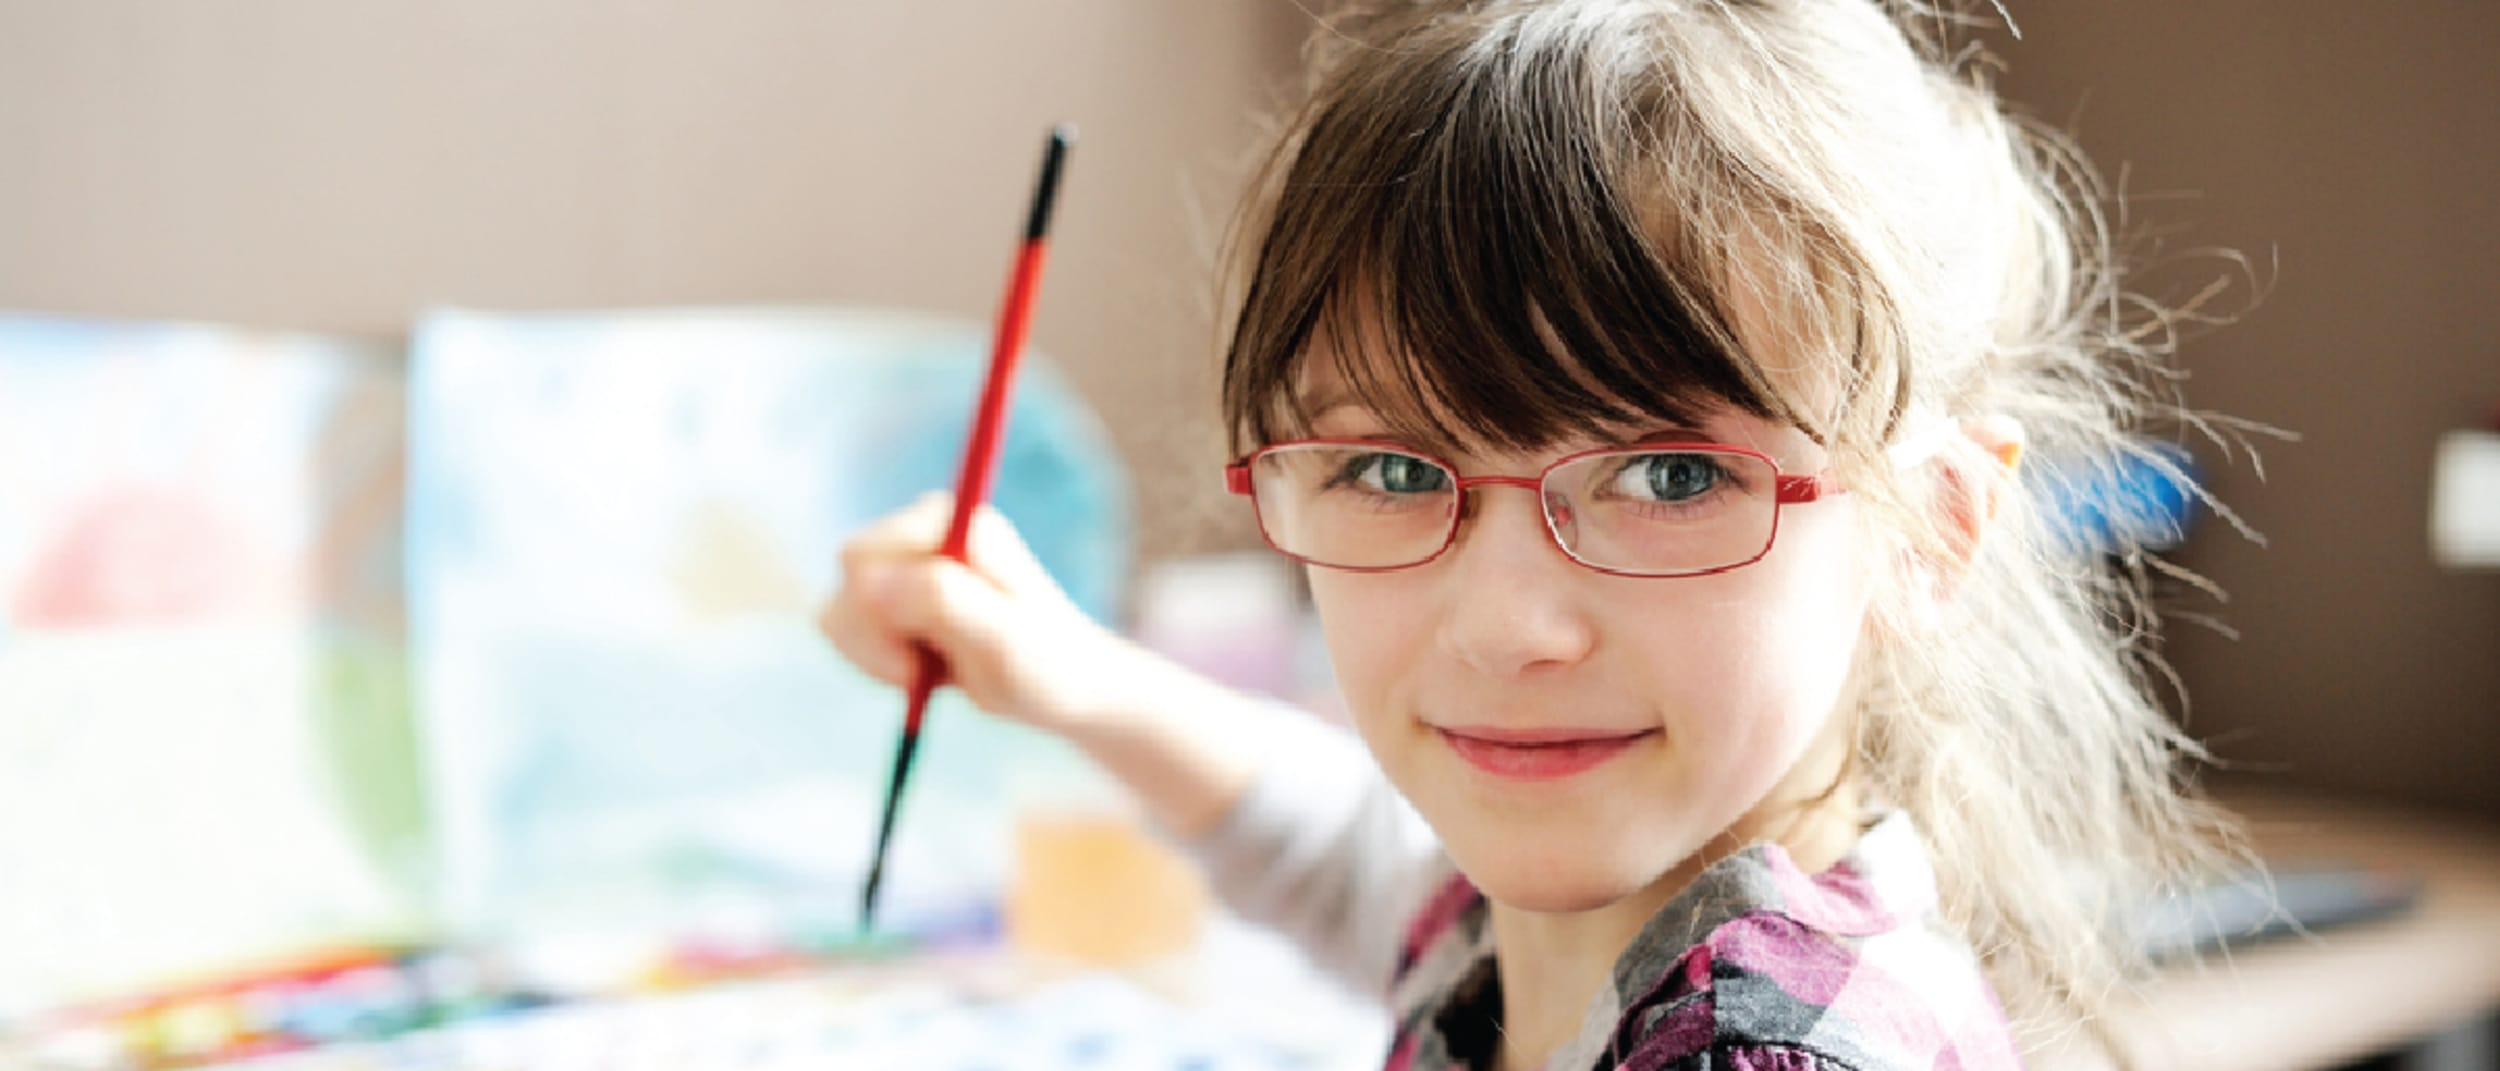 1001 Optical: Back to school offer